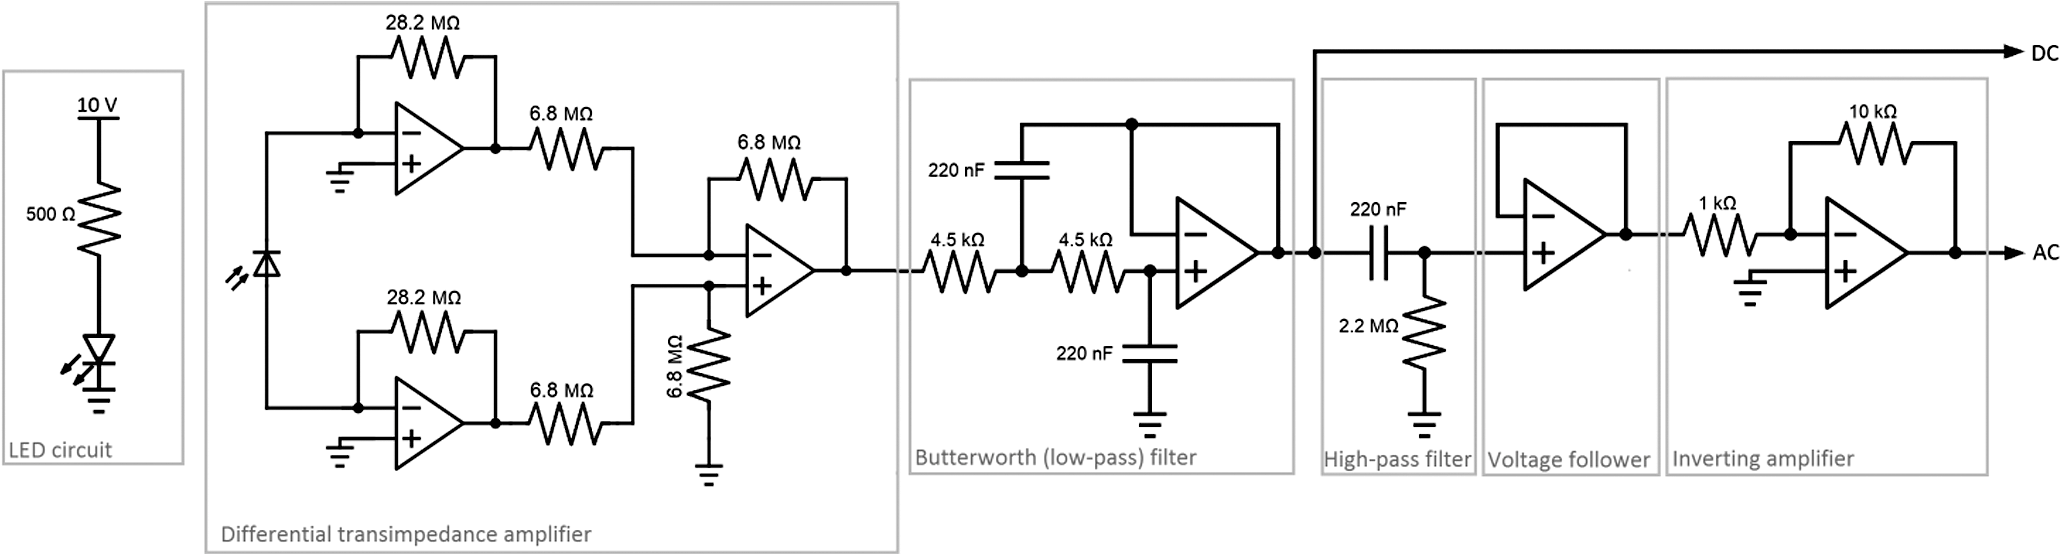 Development And Optimization Of A Miniaturized Fiber Optic The Transimpedance Amplifier Circuit Initial Ppg Setup Consisted Bandpass Filter Amplifiers To Increase Snr